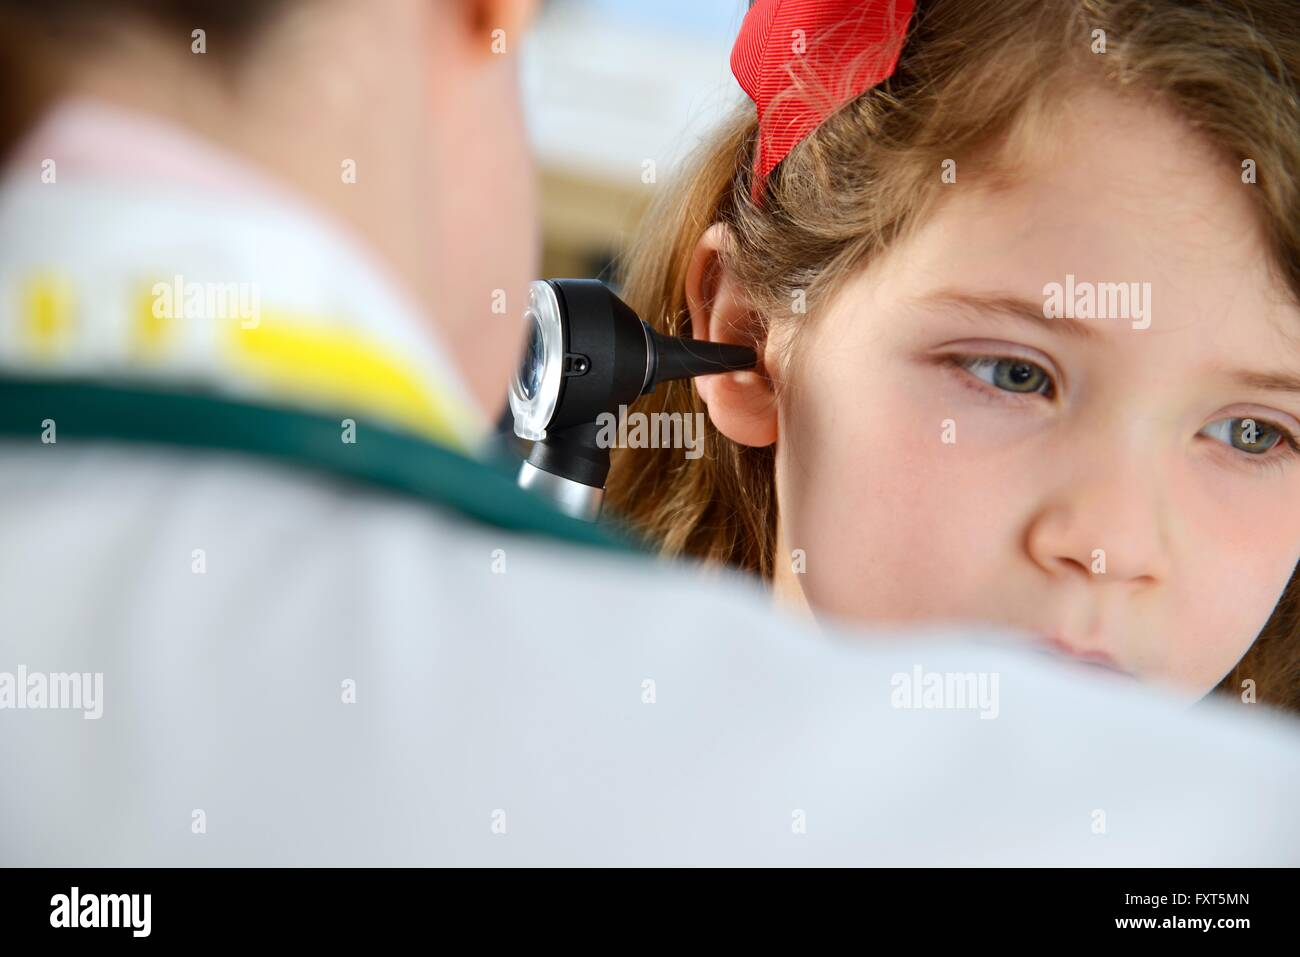 View over shoulder of doctor conducting otoscopy examination on girl - Stock Image